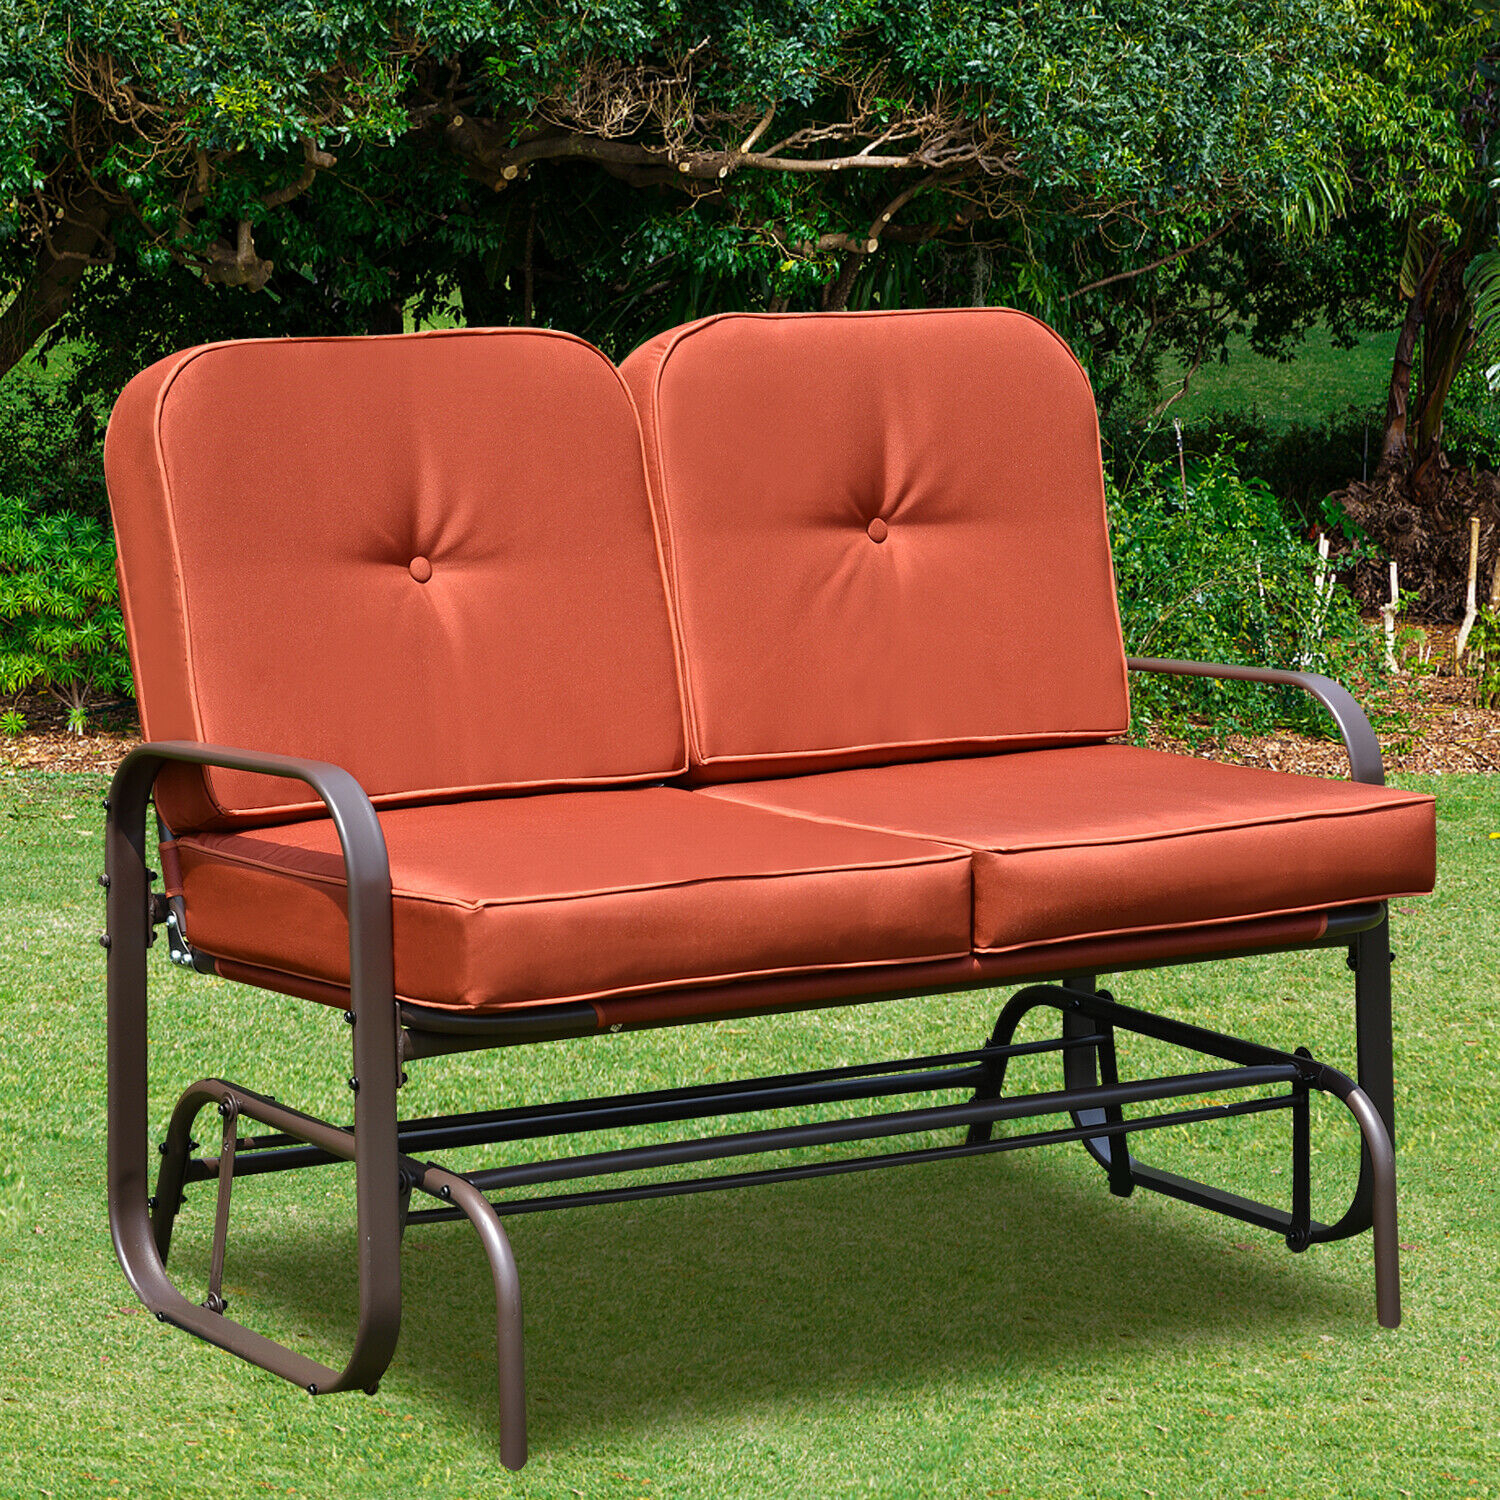 Patio Glider Bench Chair 2 Person Rocker Loveseat Outdoor Throughout Outdoor Loveseat Gliders With Cushion (View 4 of 25)